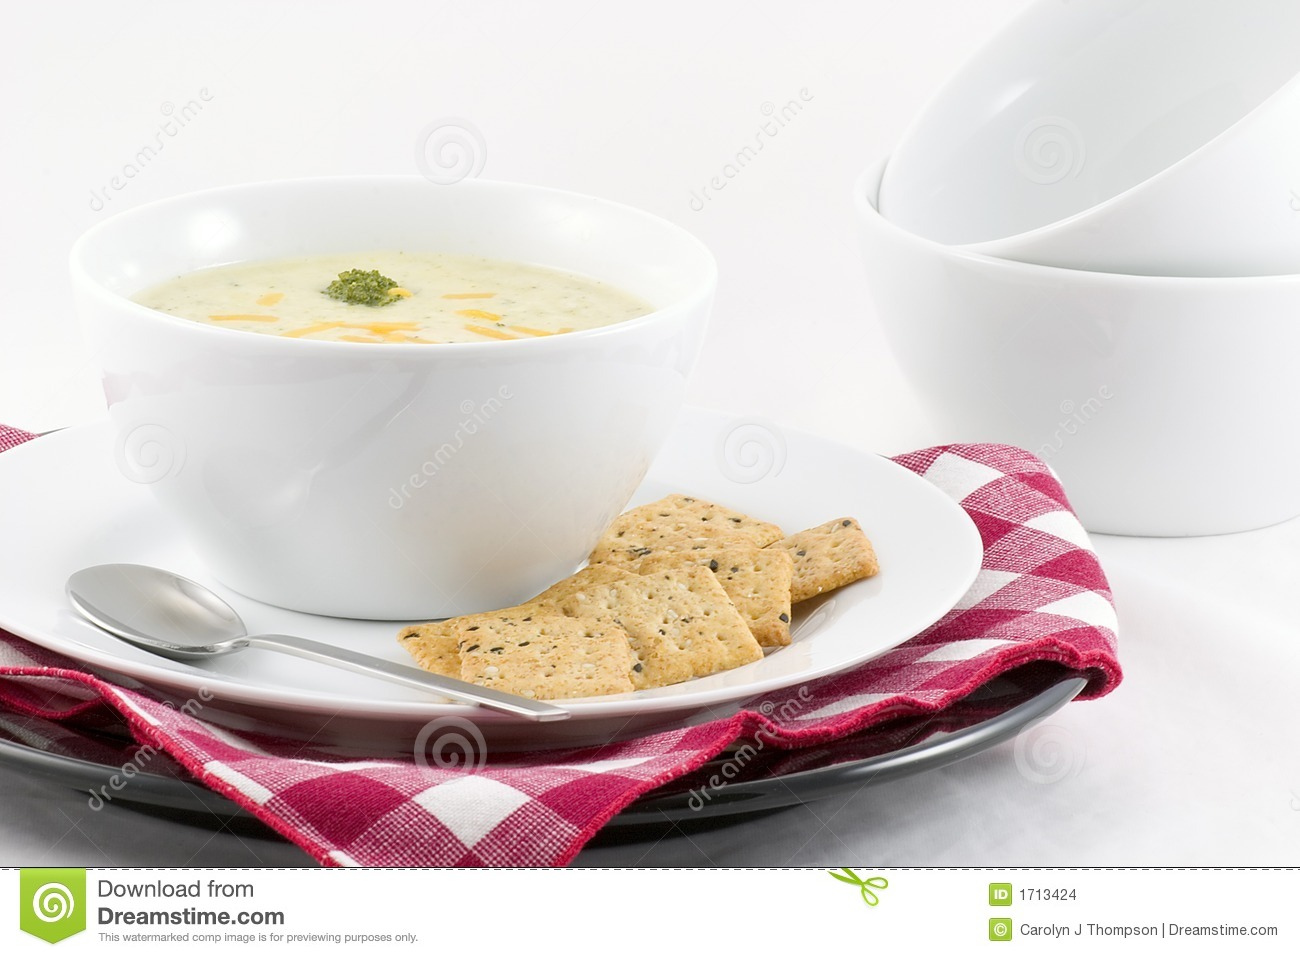 Broccoliostsoup